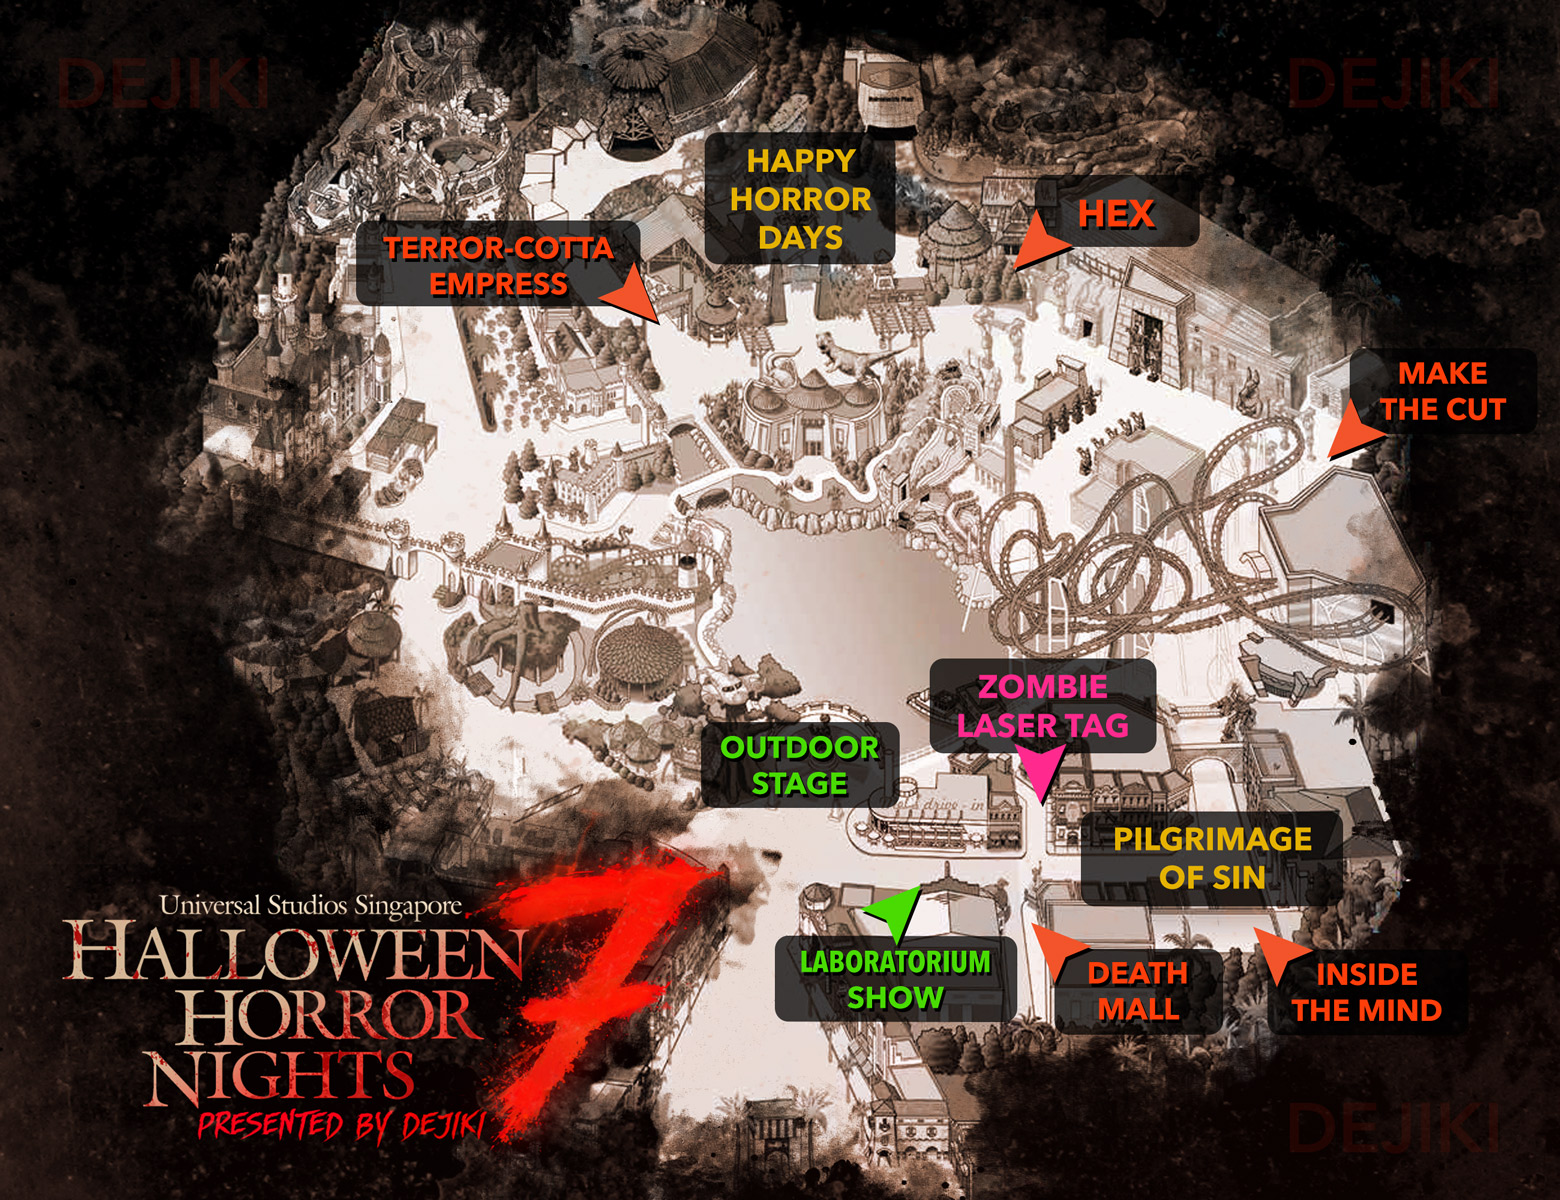 USS Halloween Horror Nights 7 Map HHN7 2017 Haunted Houses and Scare Zones